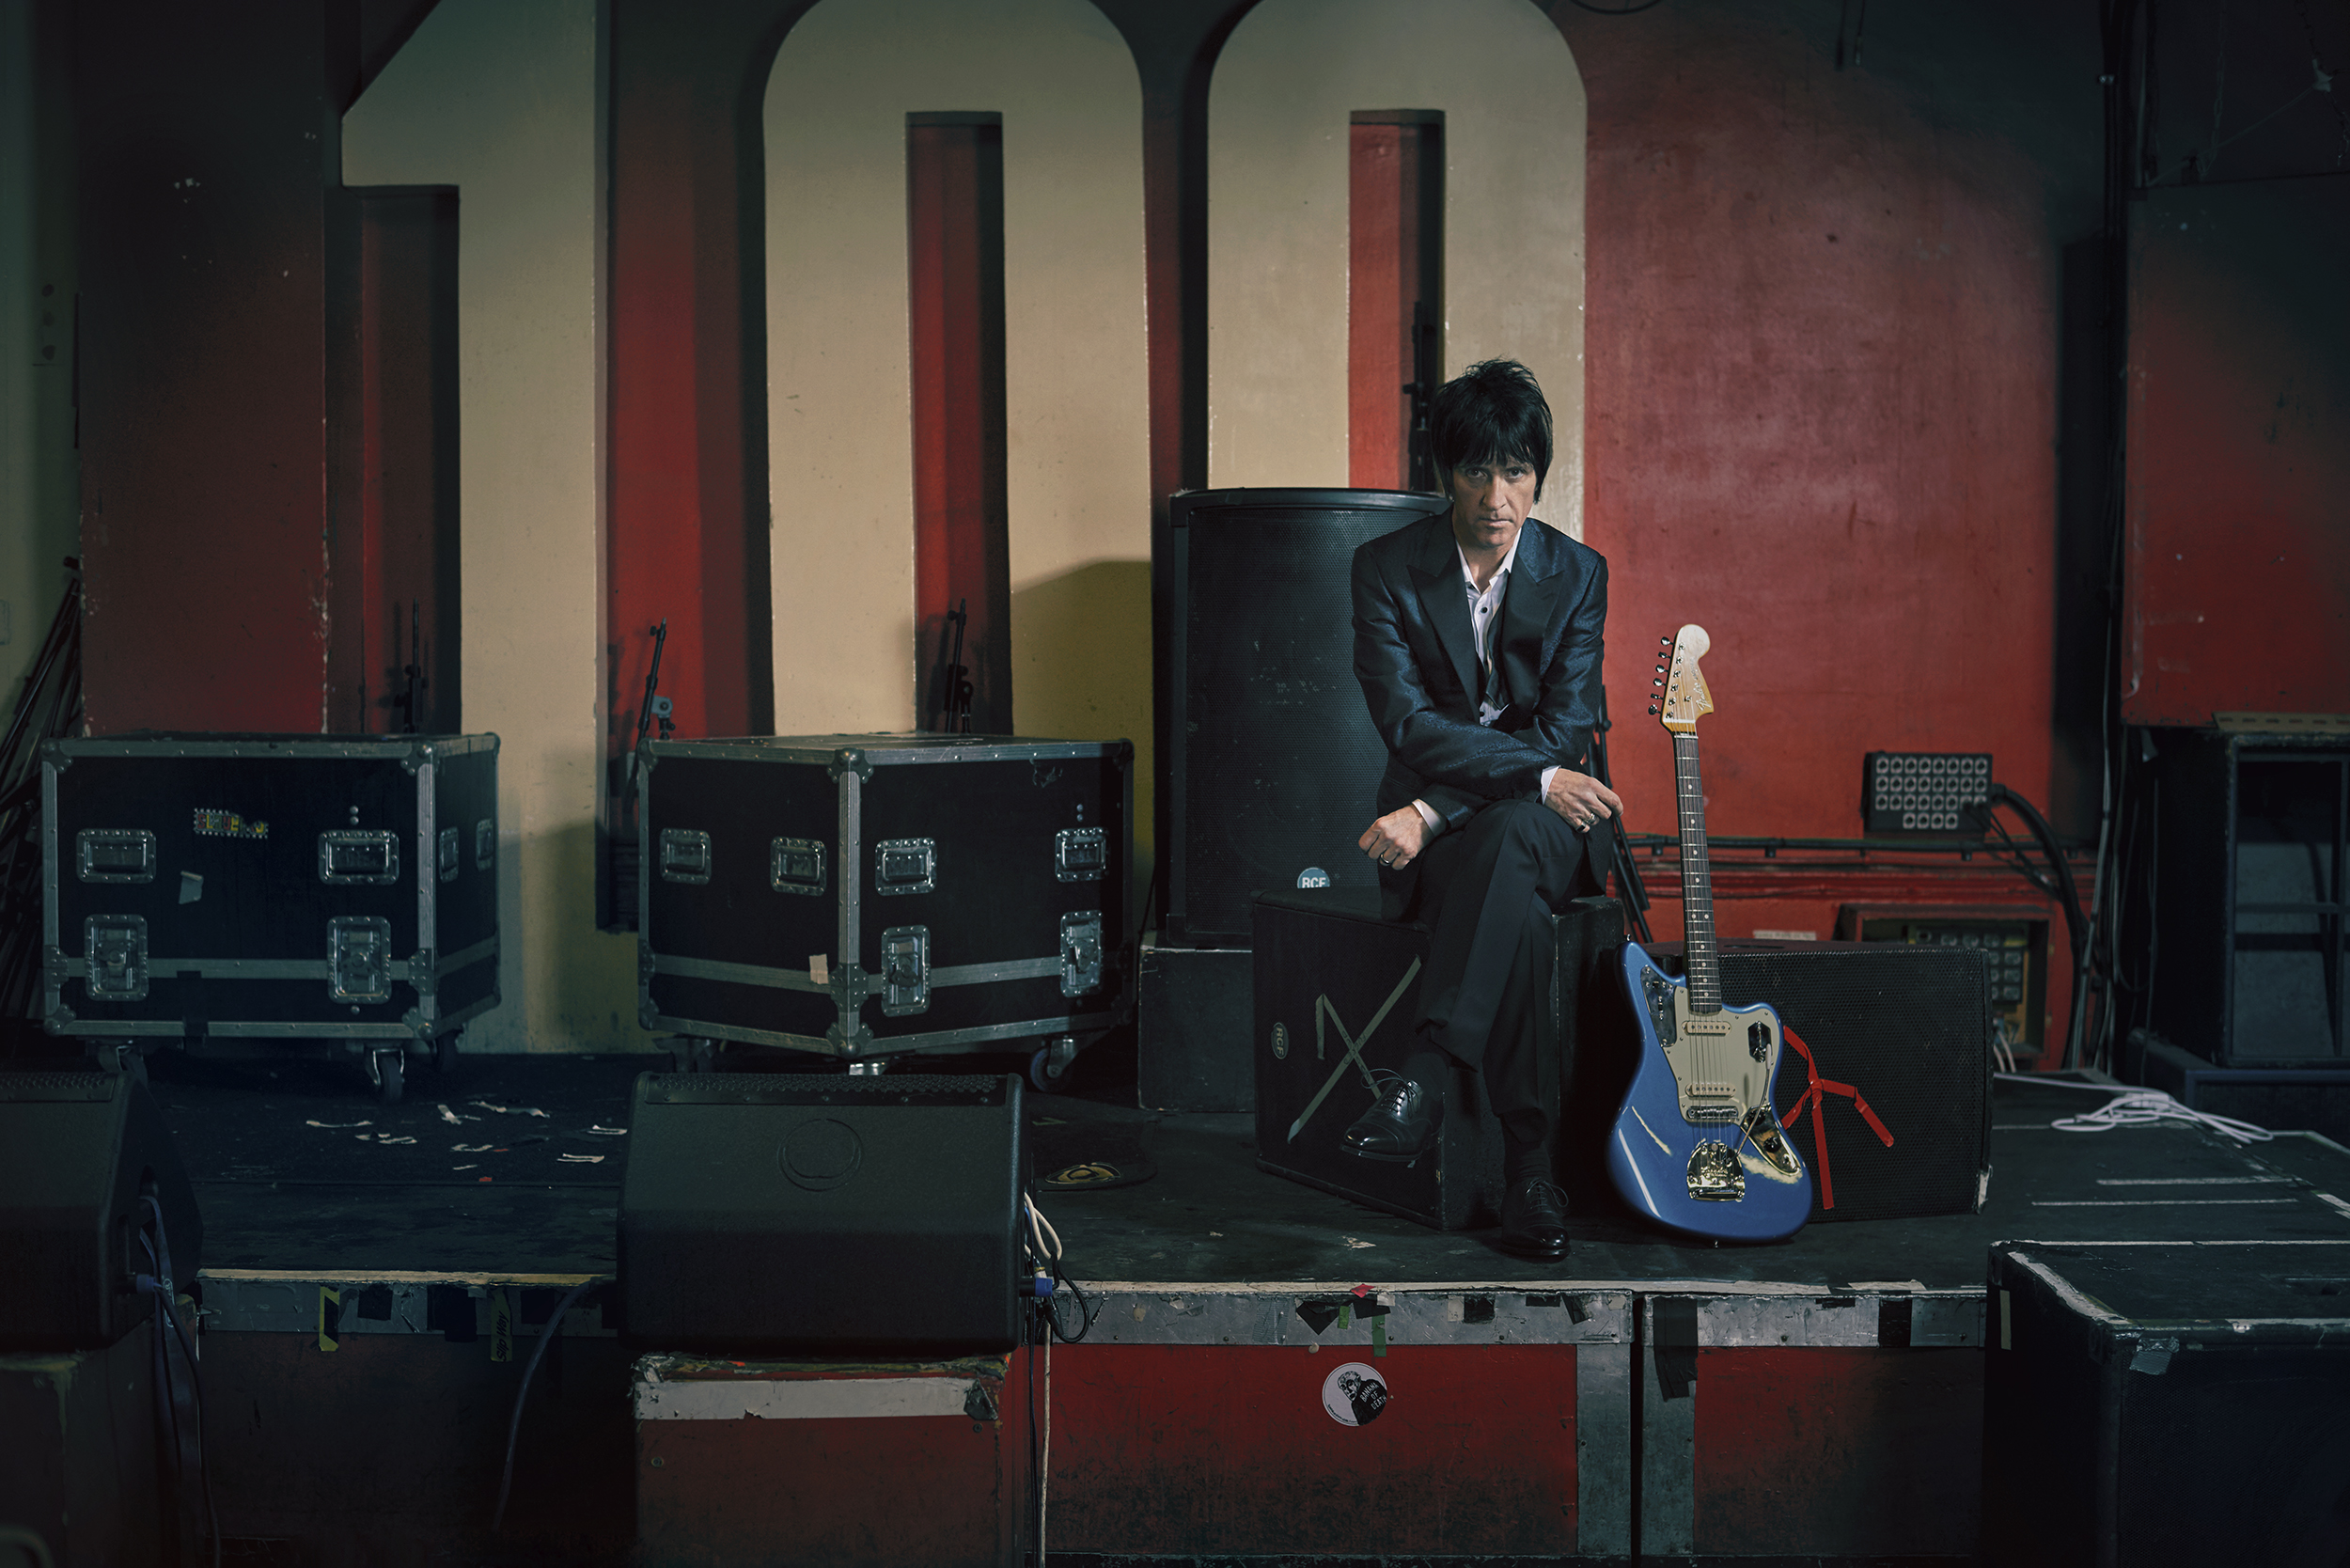 Johnny_Marr_89847_low res.jpg